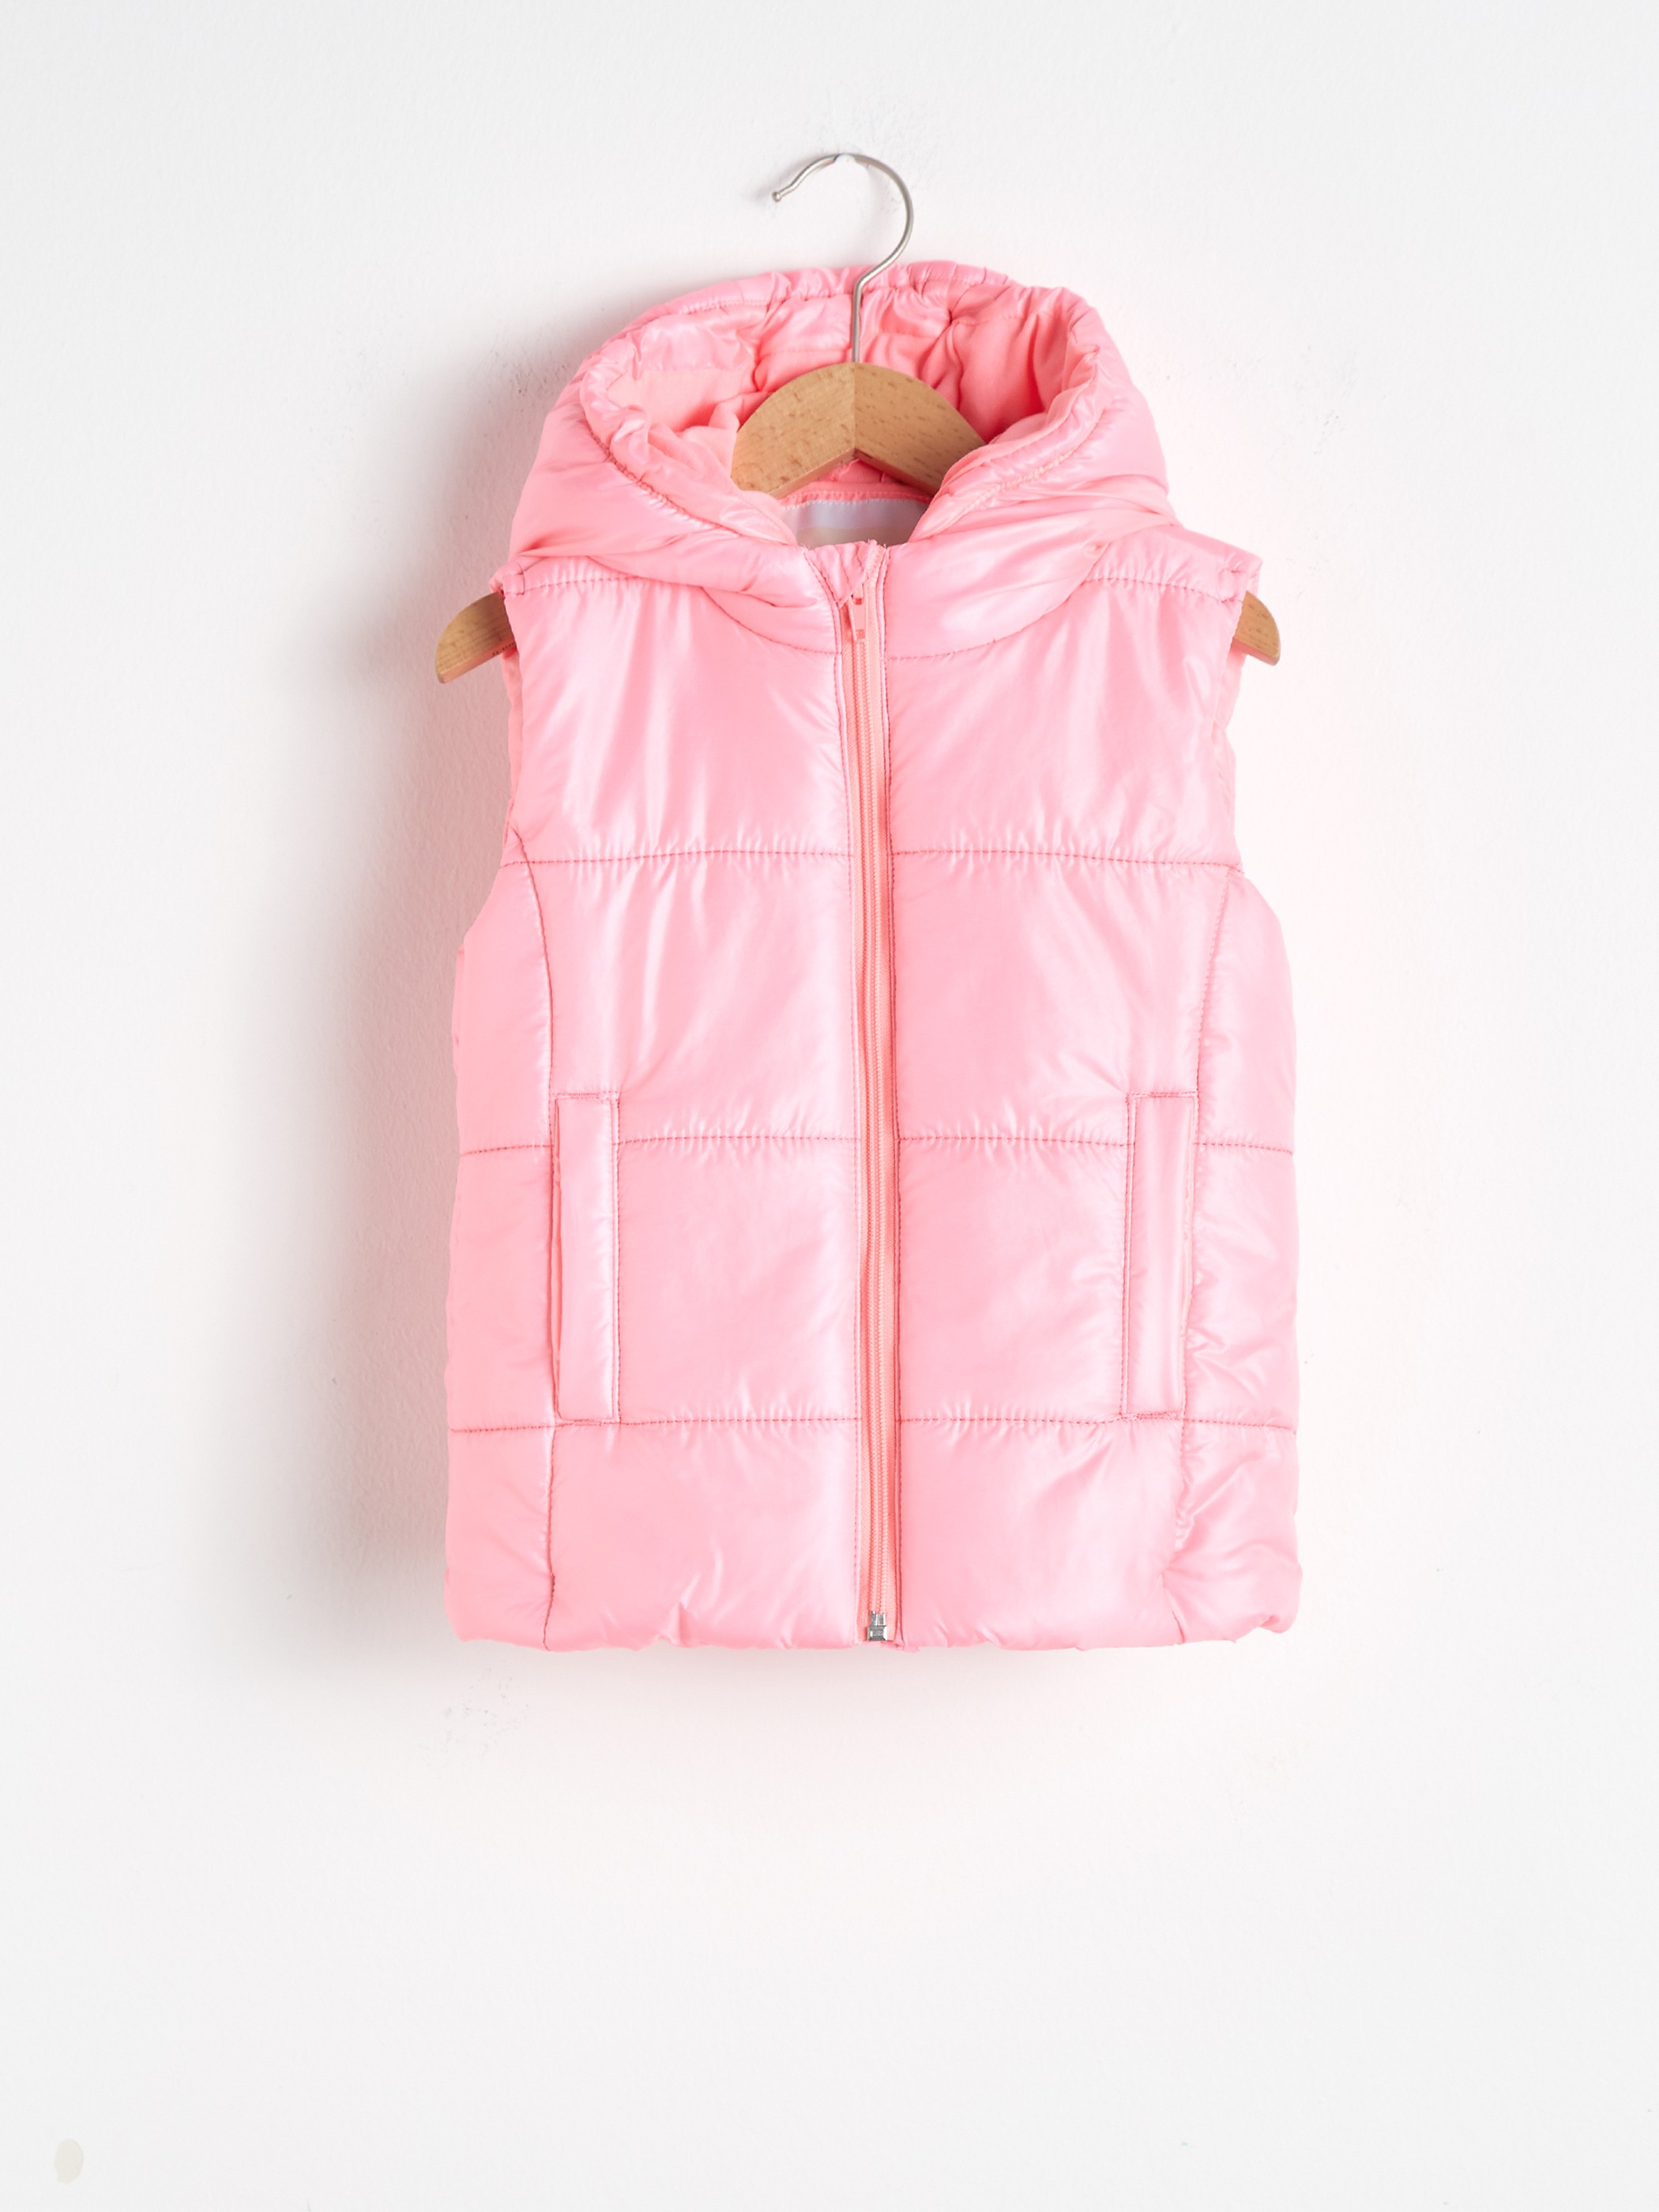 CORAL - Girl's Puffer Vest with Hood - S13695Z4